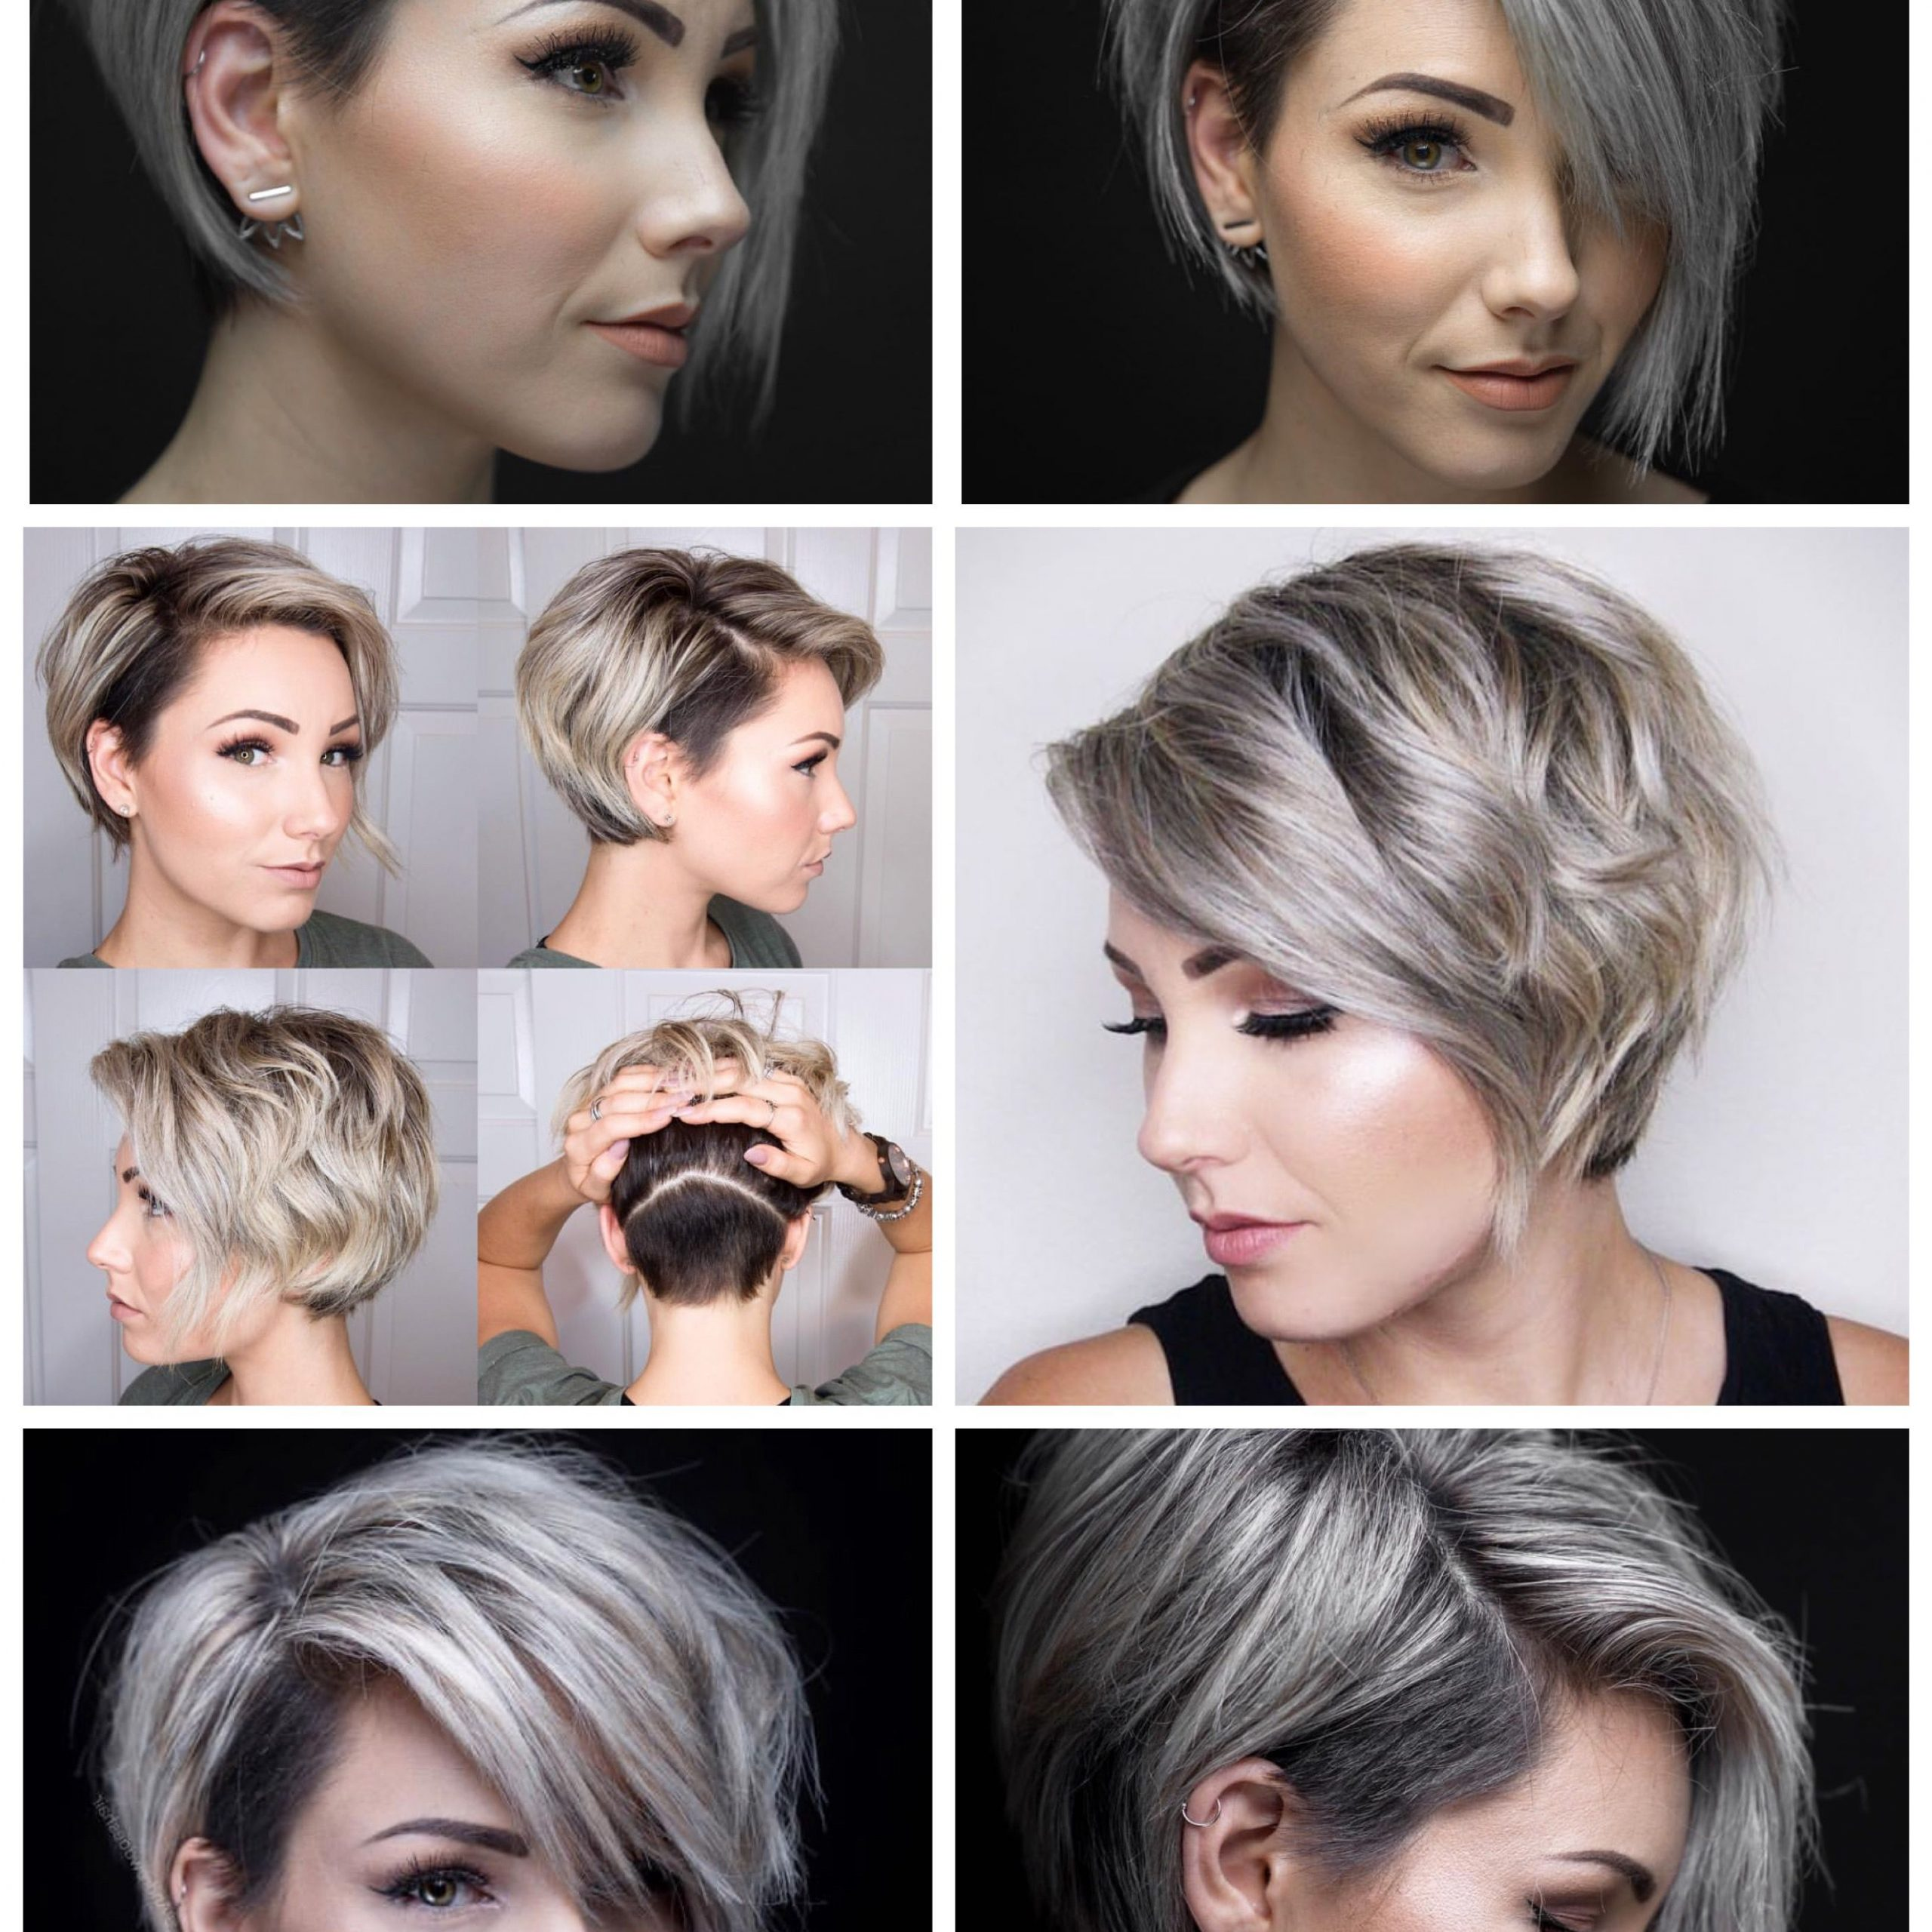 Fashionable Asymmetrical Feathered Bangs Hairstyles With Short Hair With Regard To Pin On Beauty (View 4 of 20)